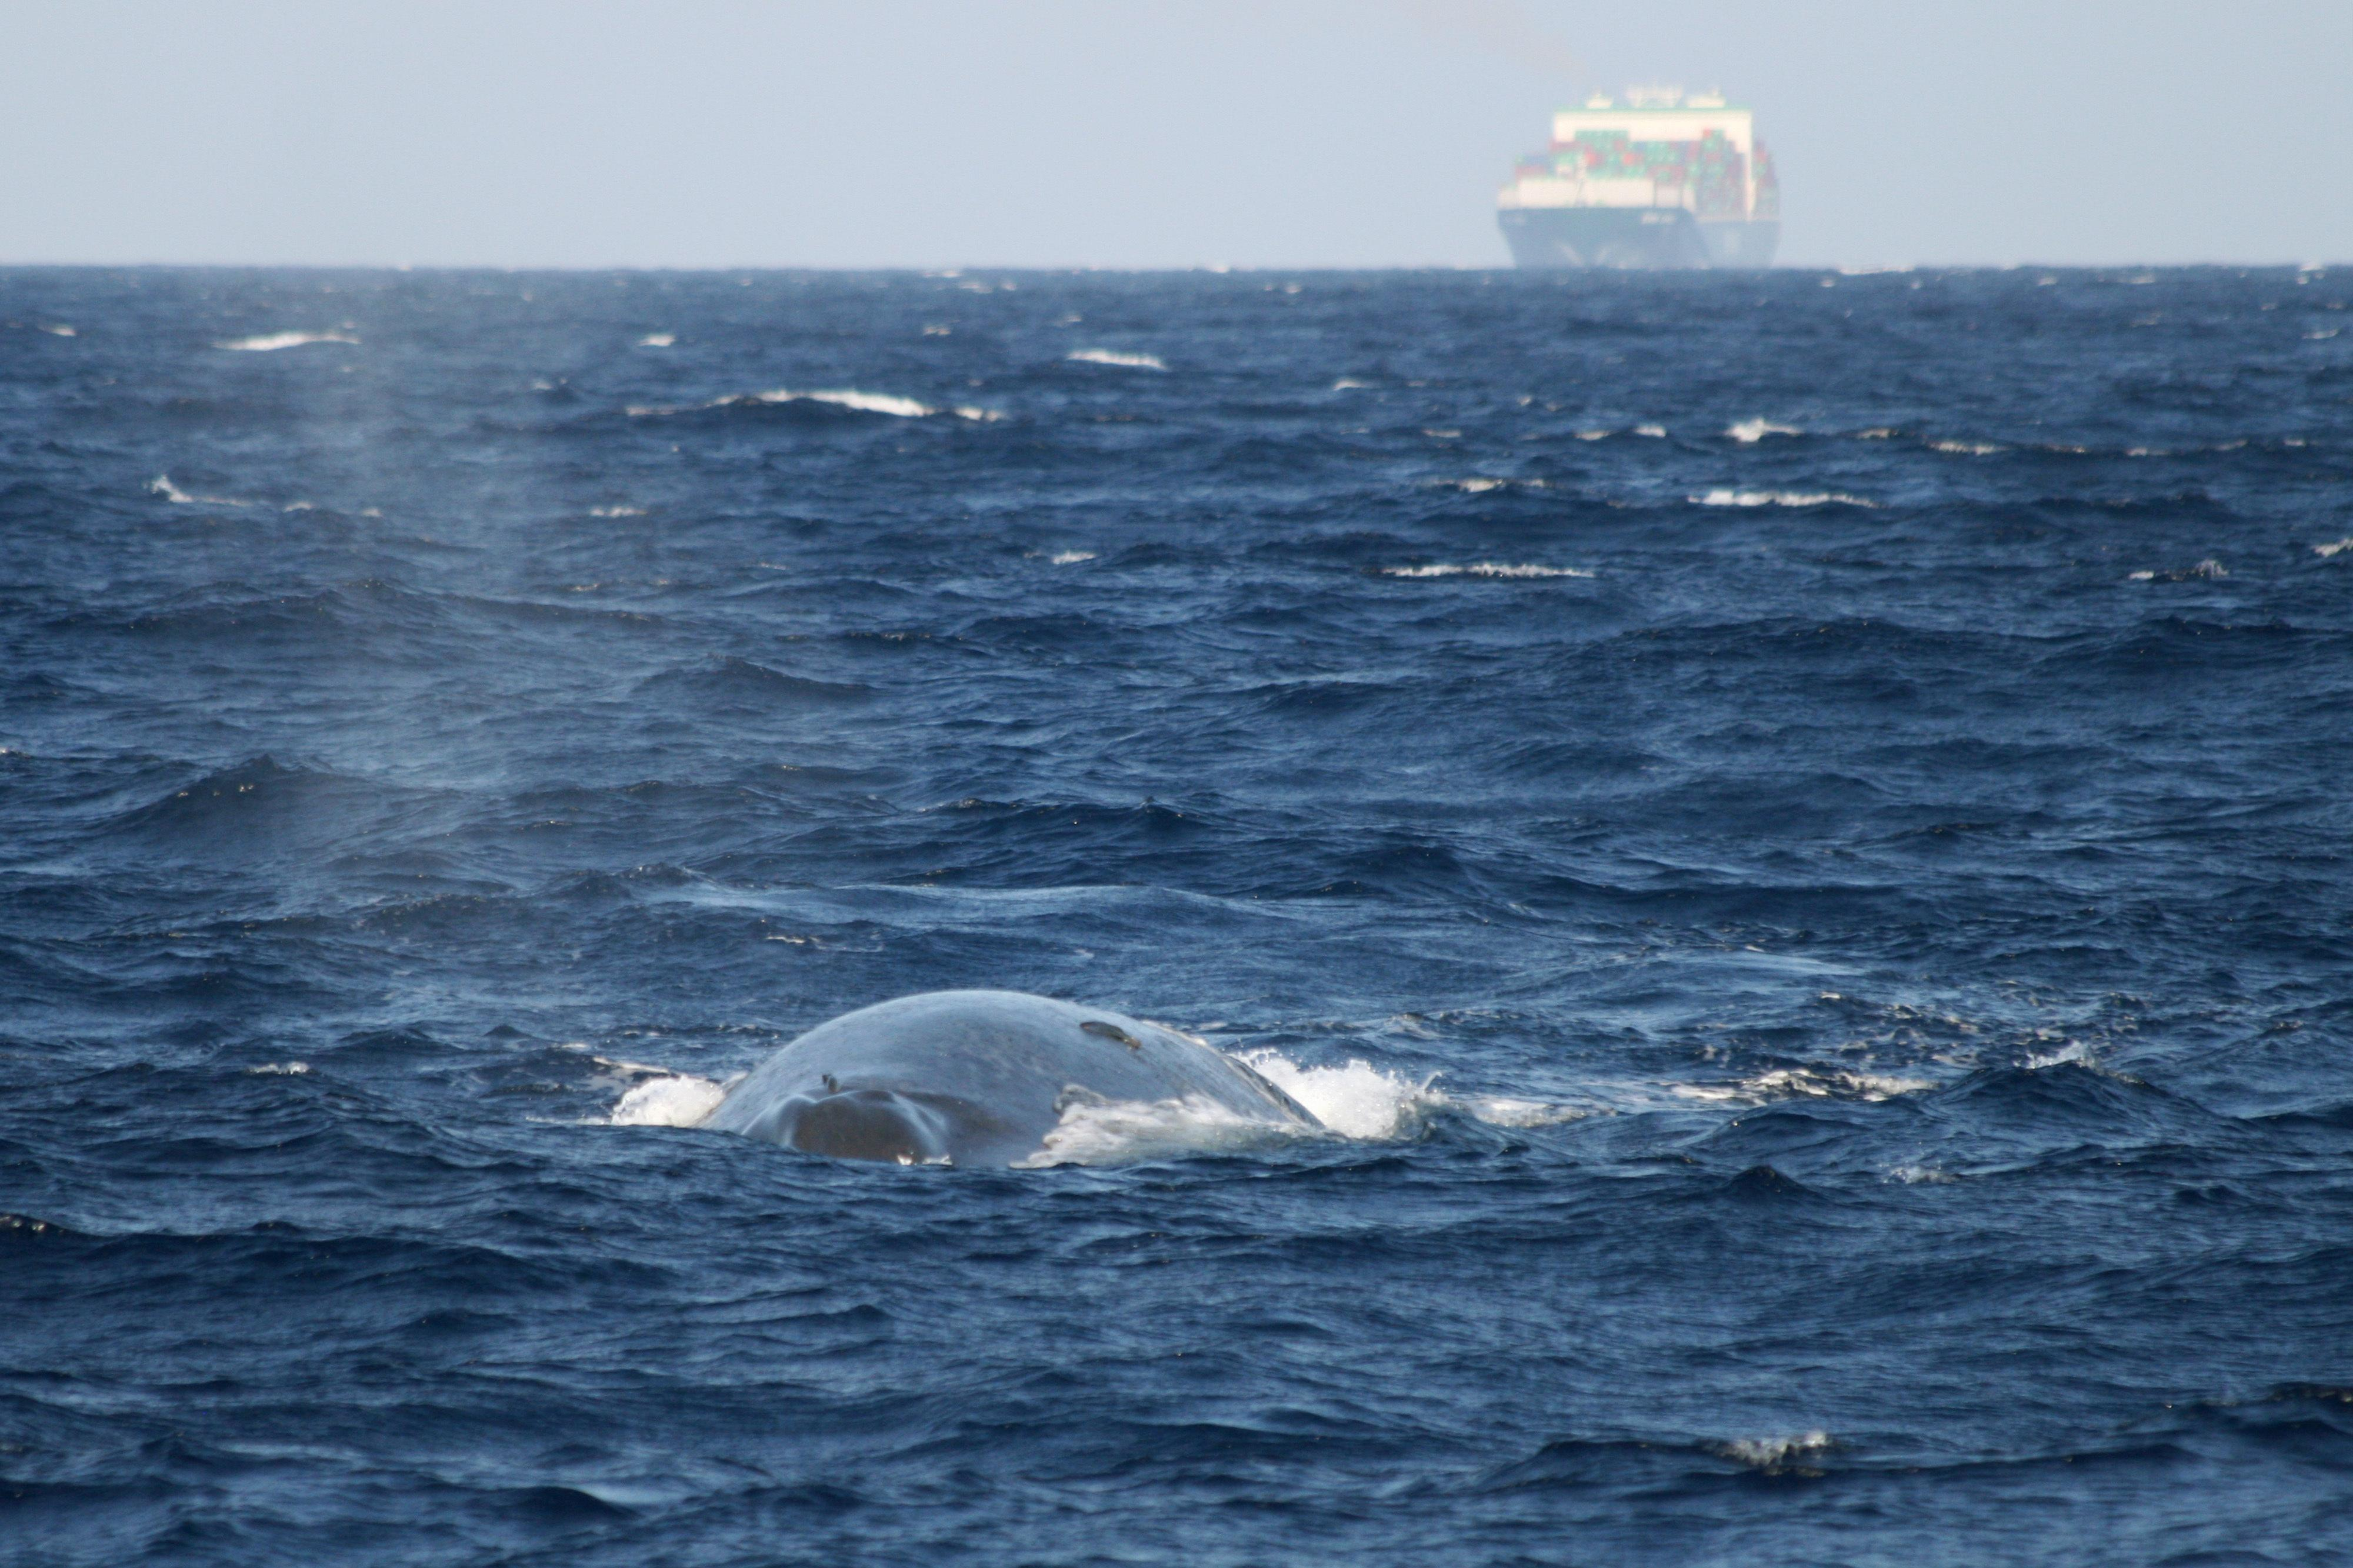 Alliance to save blue whales from ships stalled by Sri Lanka | The